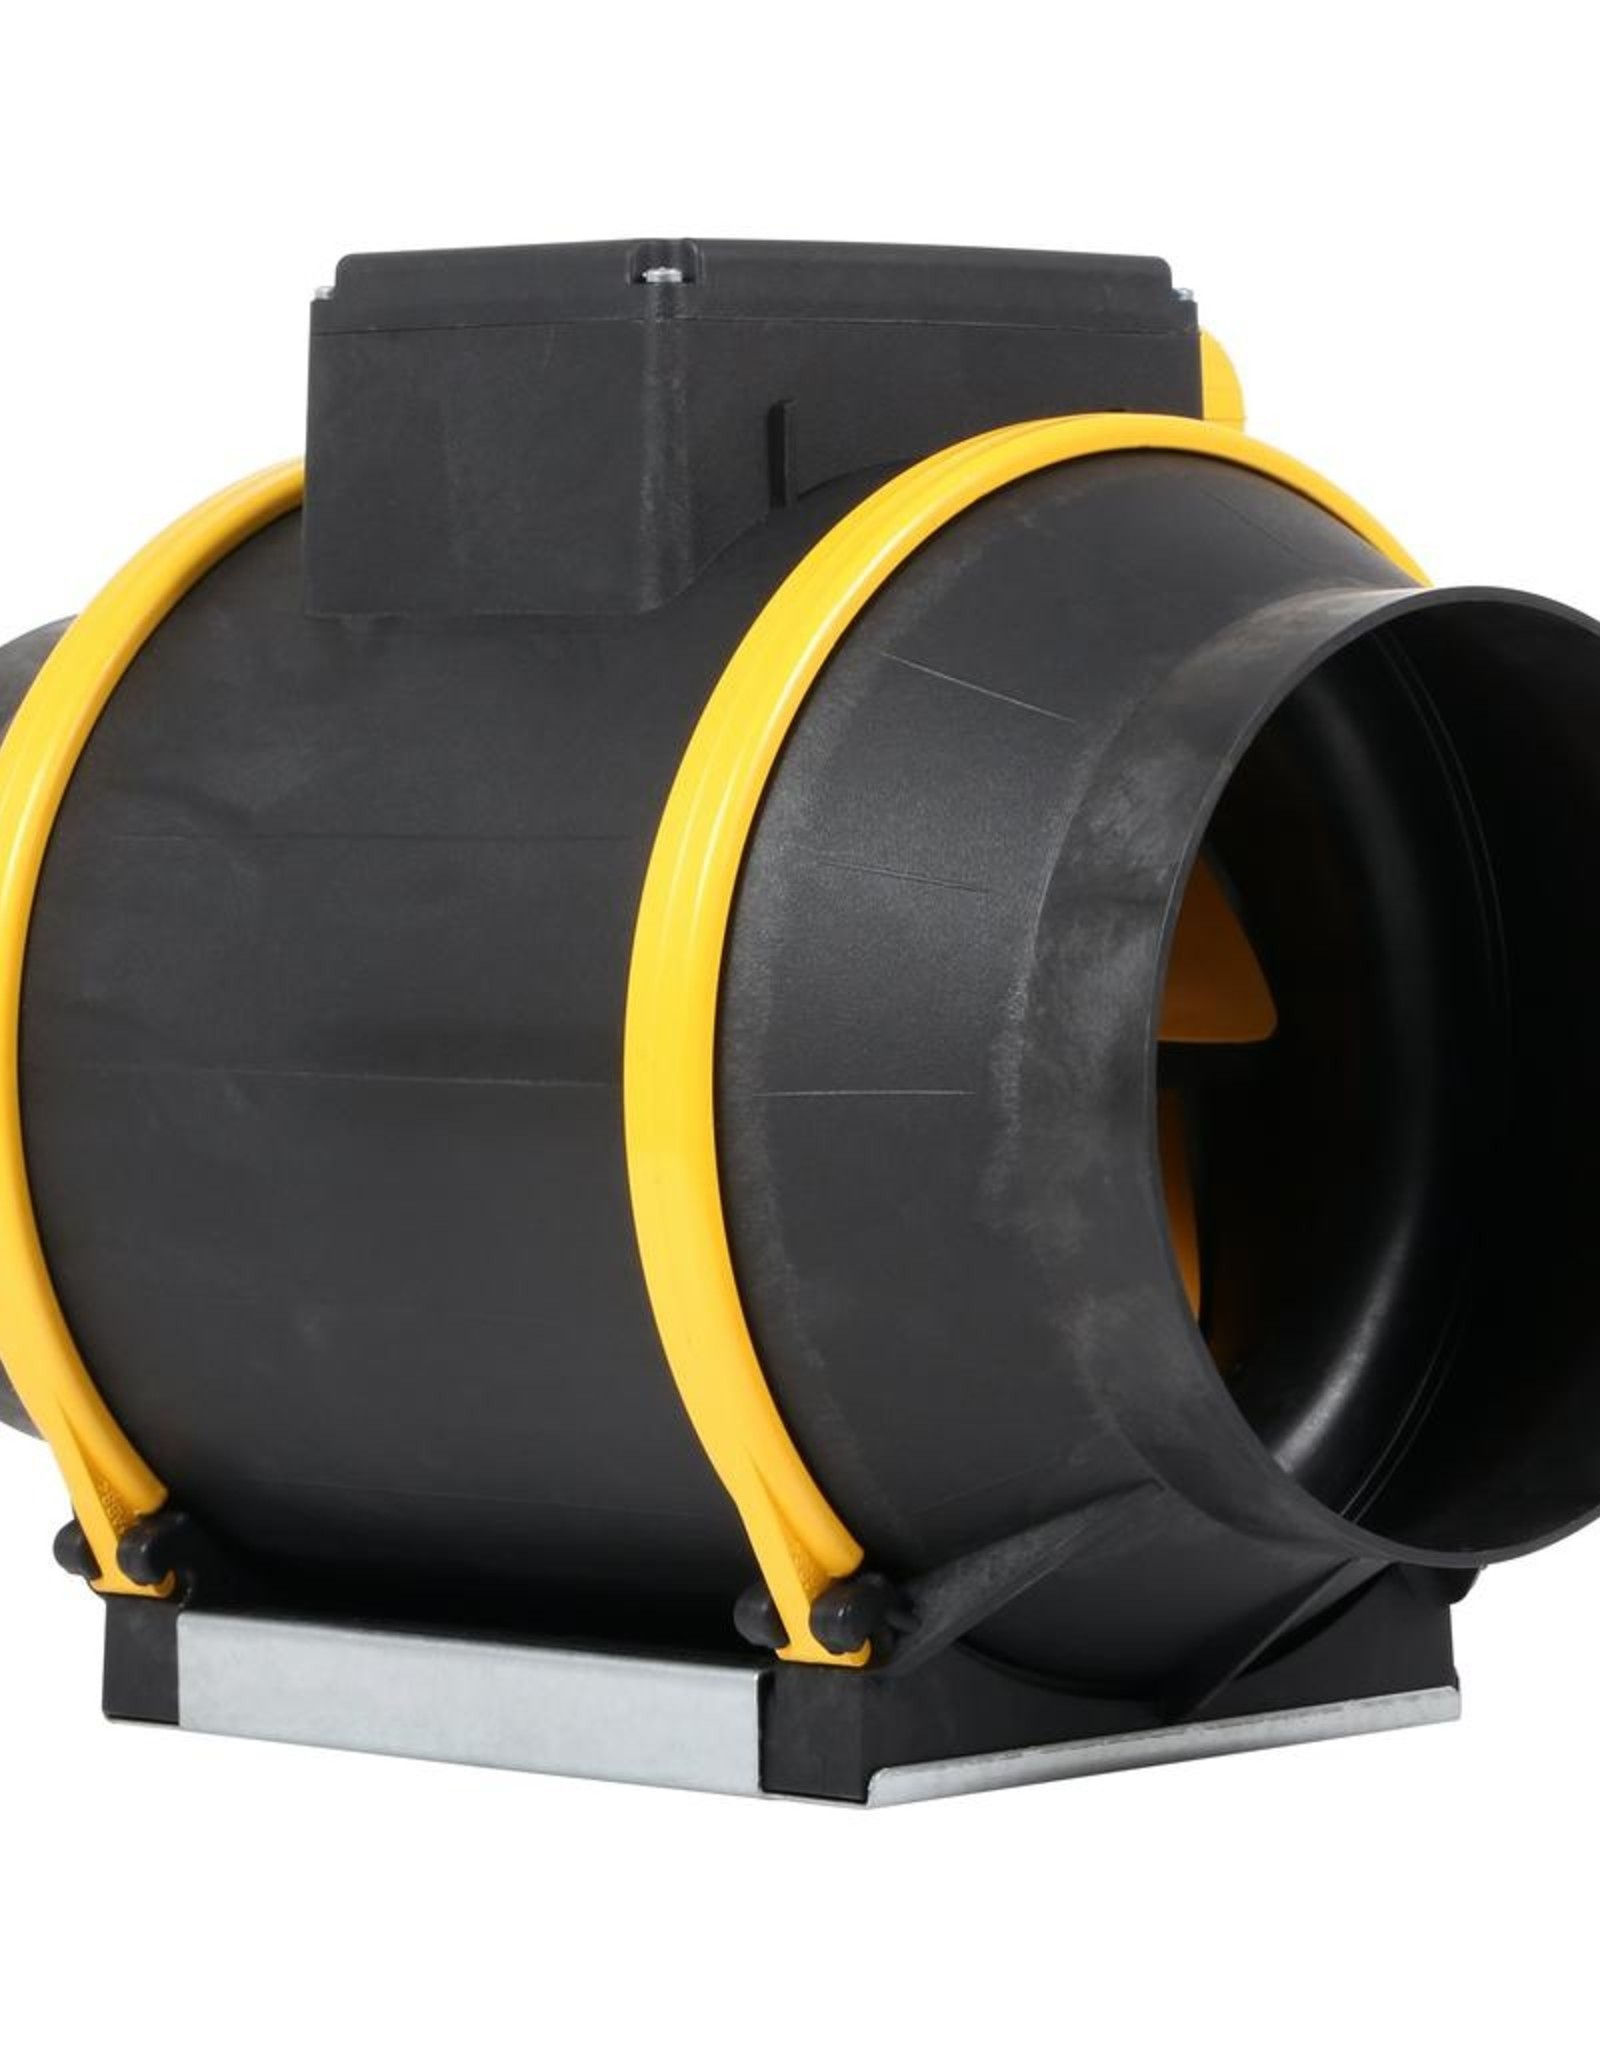 CAN FAN Max-Fan™ Pro Series is even more efficient and stronger than the original Max-Fan™ design, the Max-Fan™ Pro Series has a much more robust housing due to the fiberglass reinforced plastic compounds that meet all of the UL and CSA requirements. The fans hav